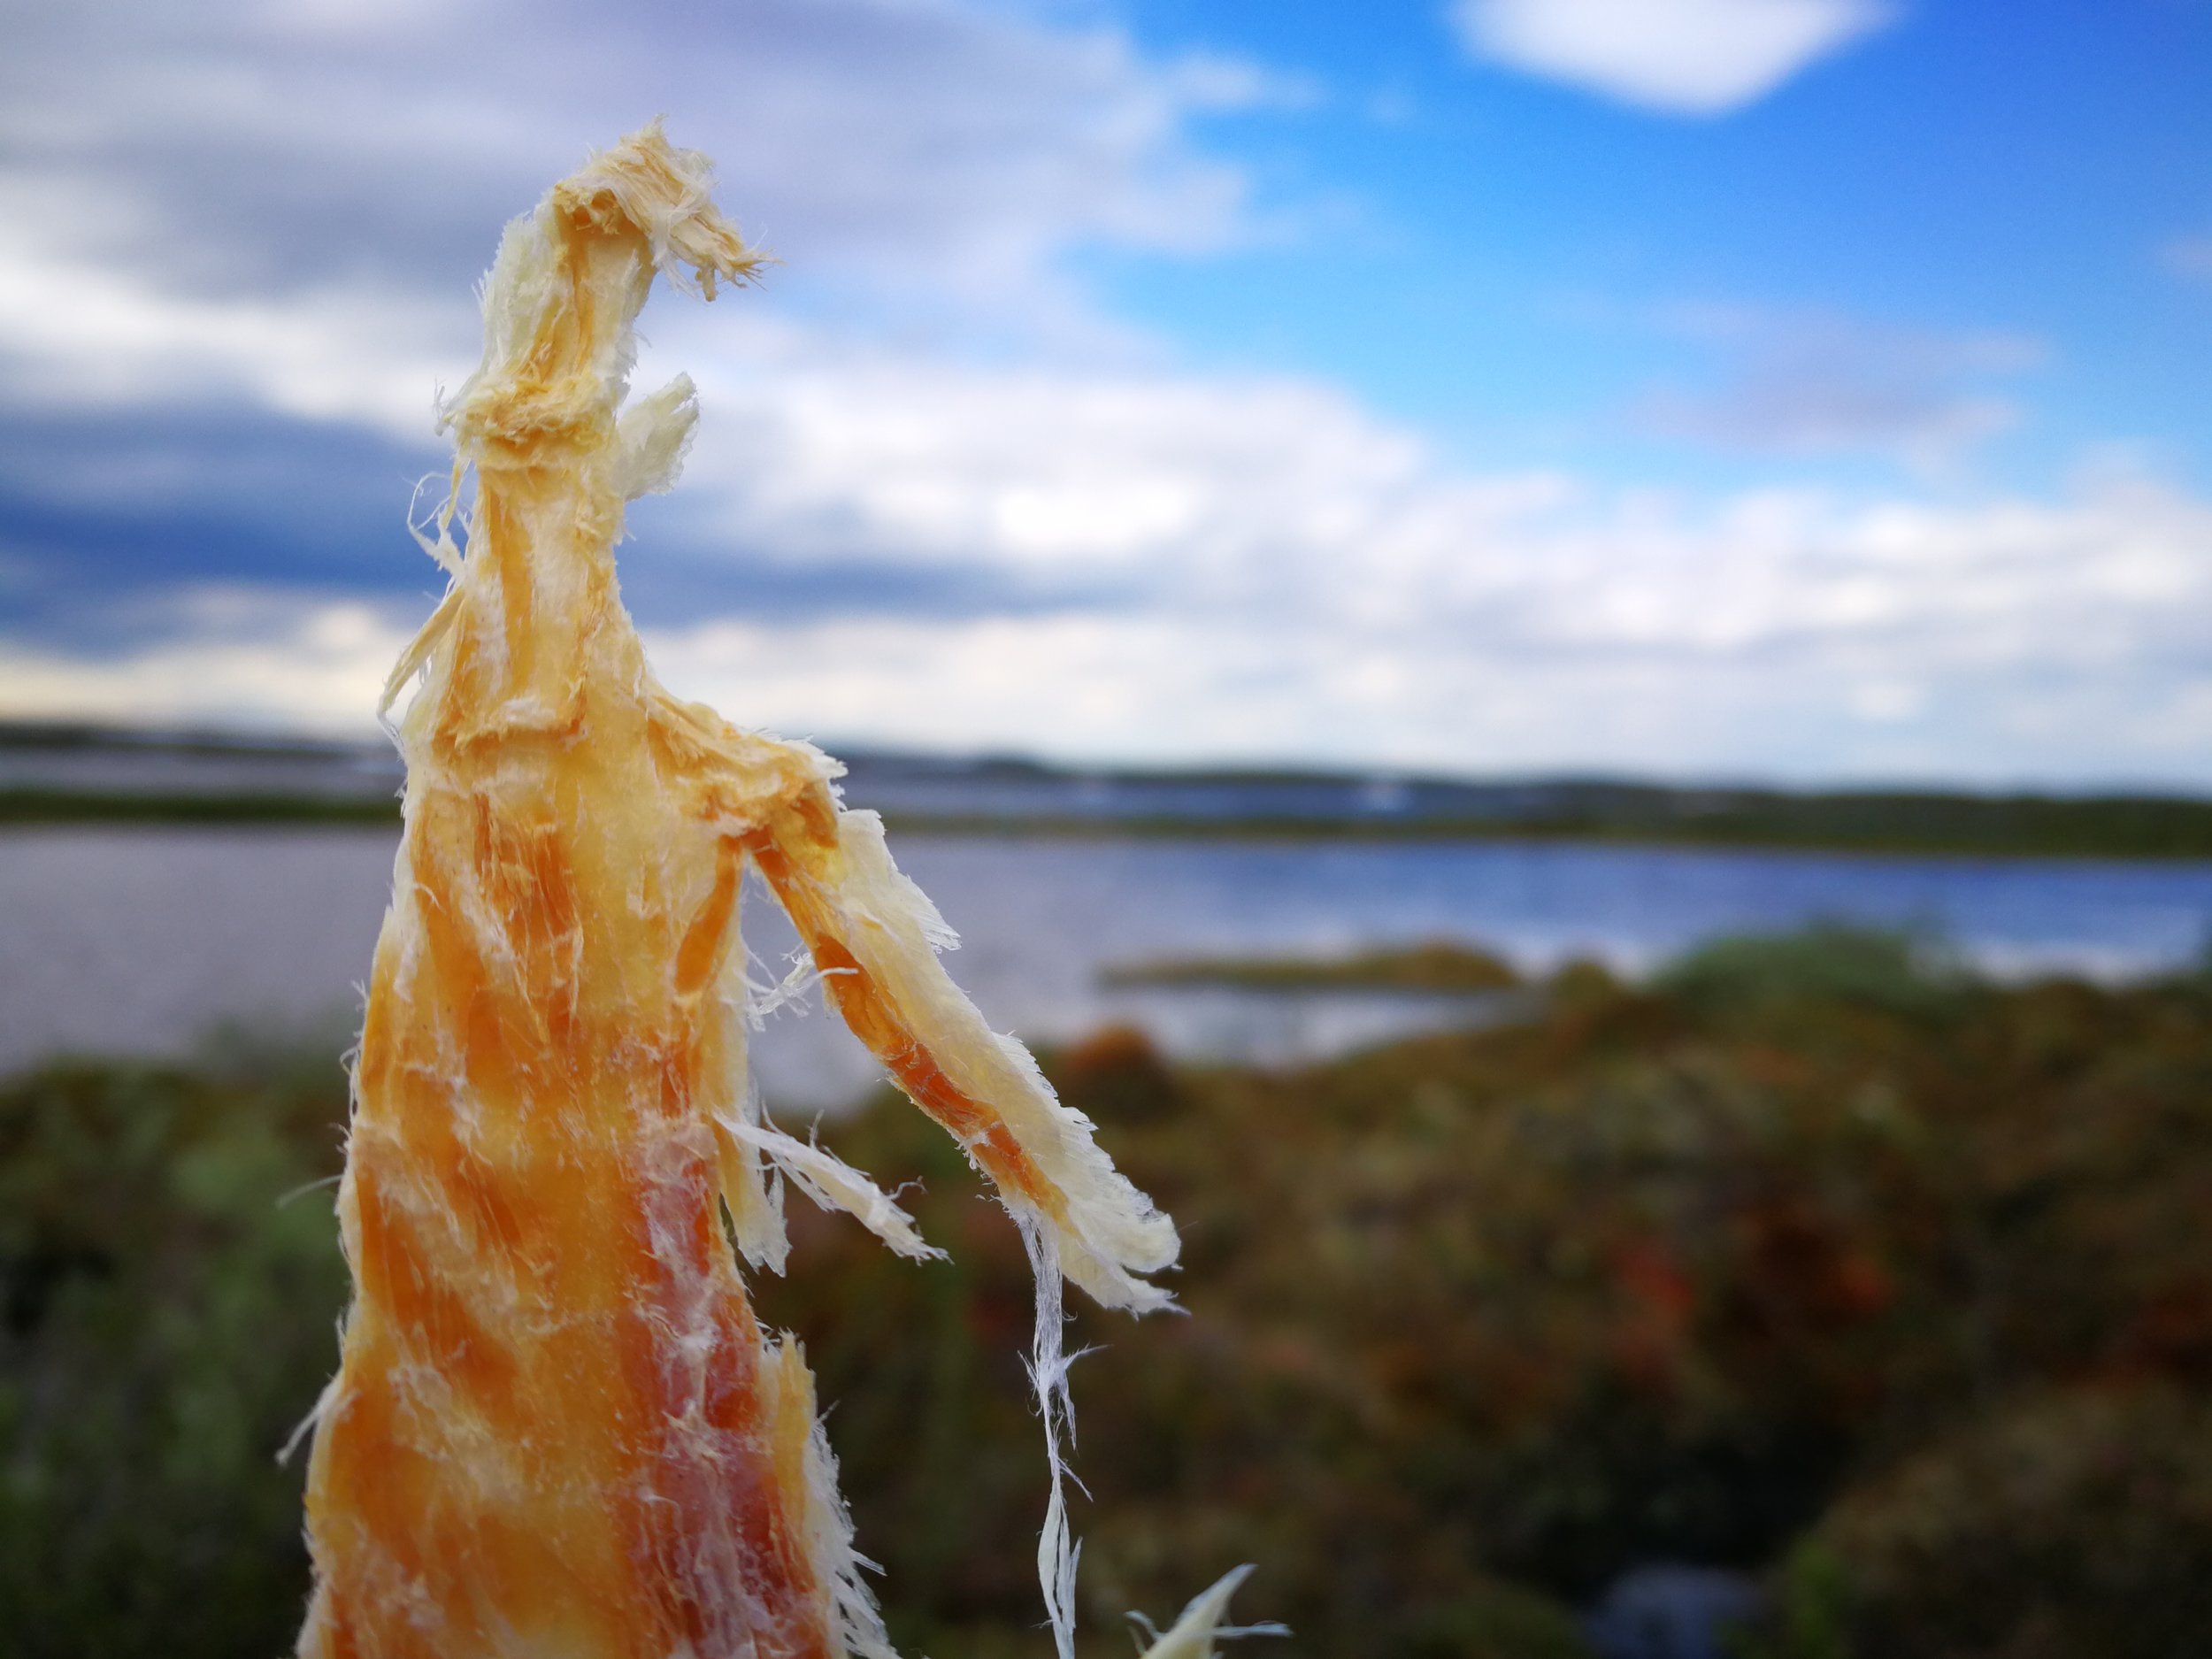 Dried fish with a view